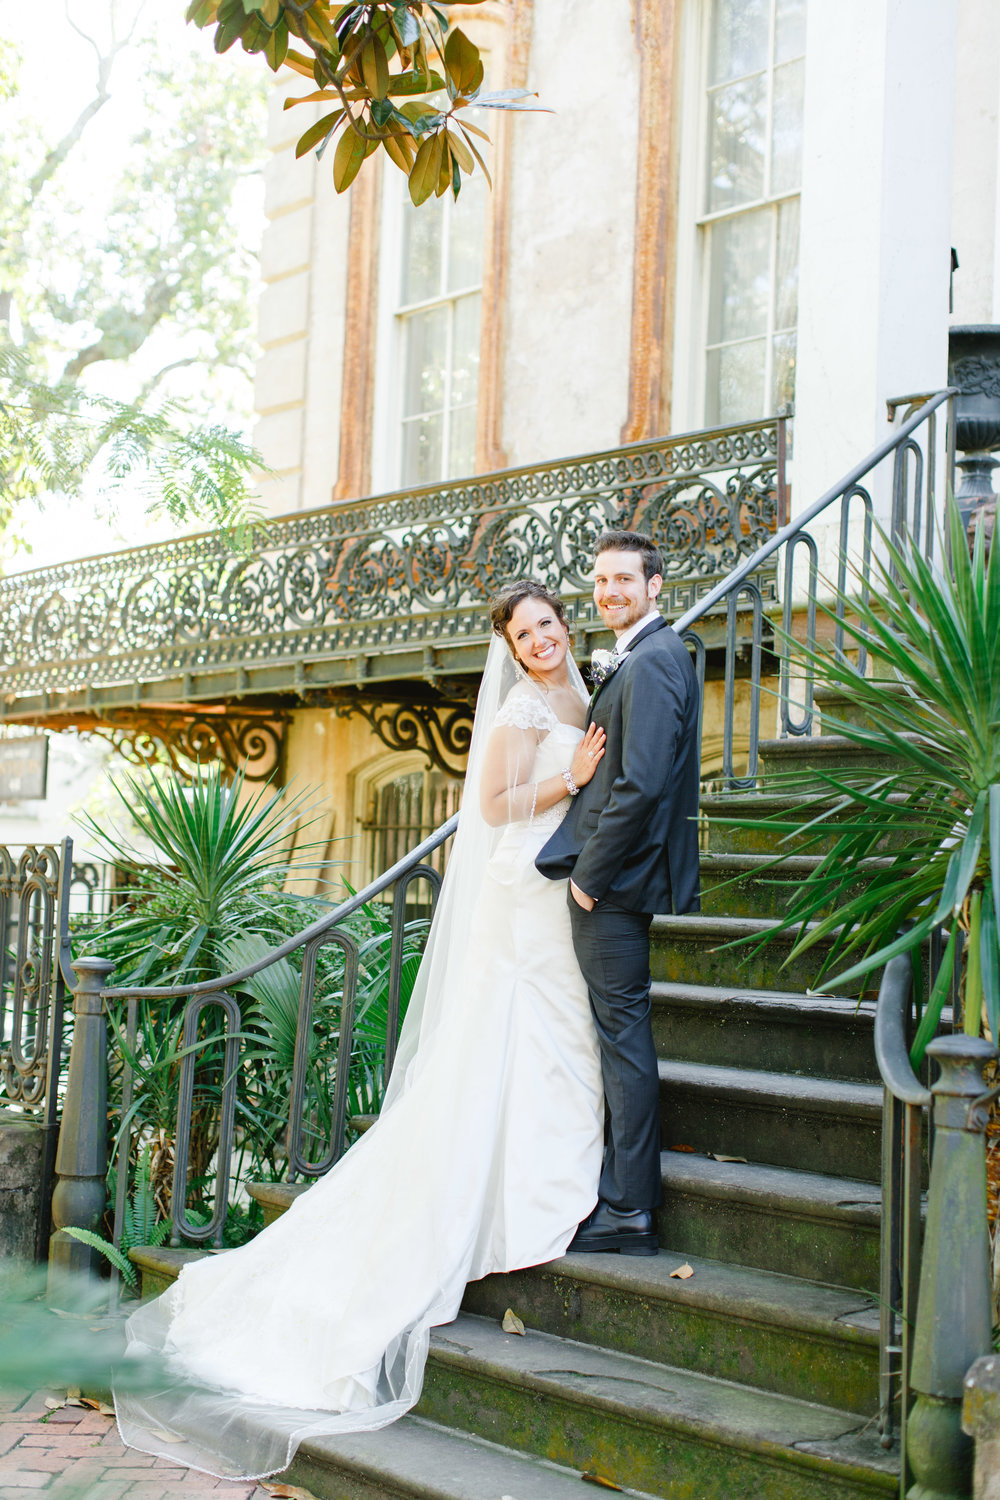 ivory-and-beau-bridal-boutique-aubrie-and-adam-the-happy-bloom-photography-savannah-wedding-planner-savannah-wedding-coordinator-24.jpg